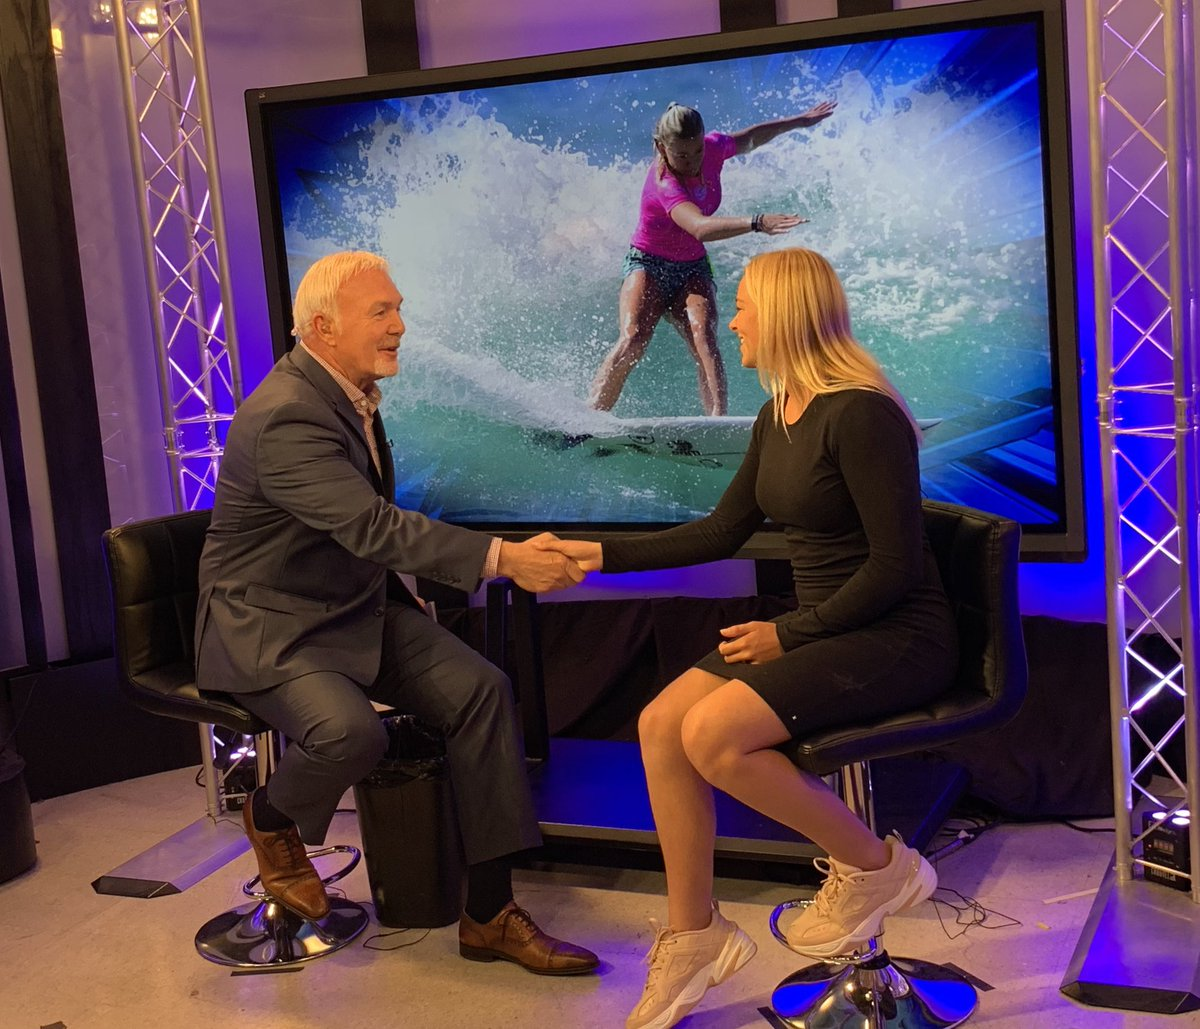 World Champion Surfer @kirrapink in the studio at 5! She is AMAZING! #surfing #socalsurfing @PPRPapaPigpic.twitter.com/zJhSt2l8yD